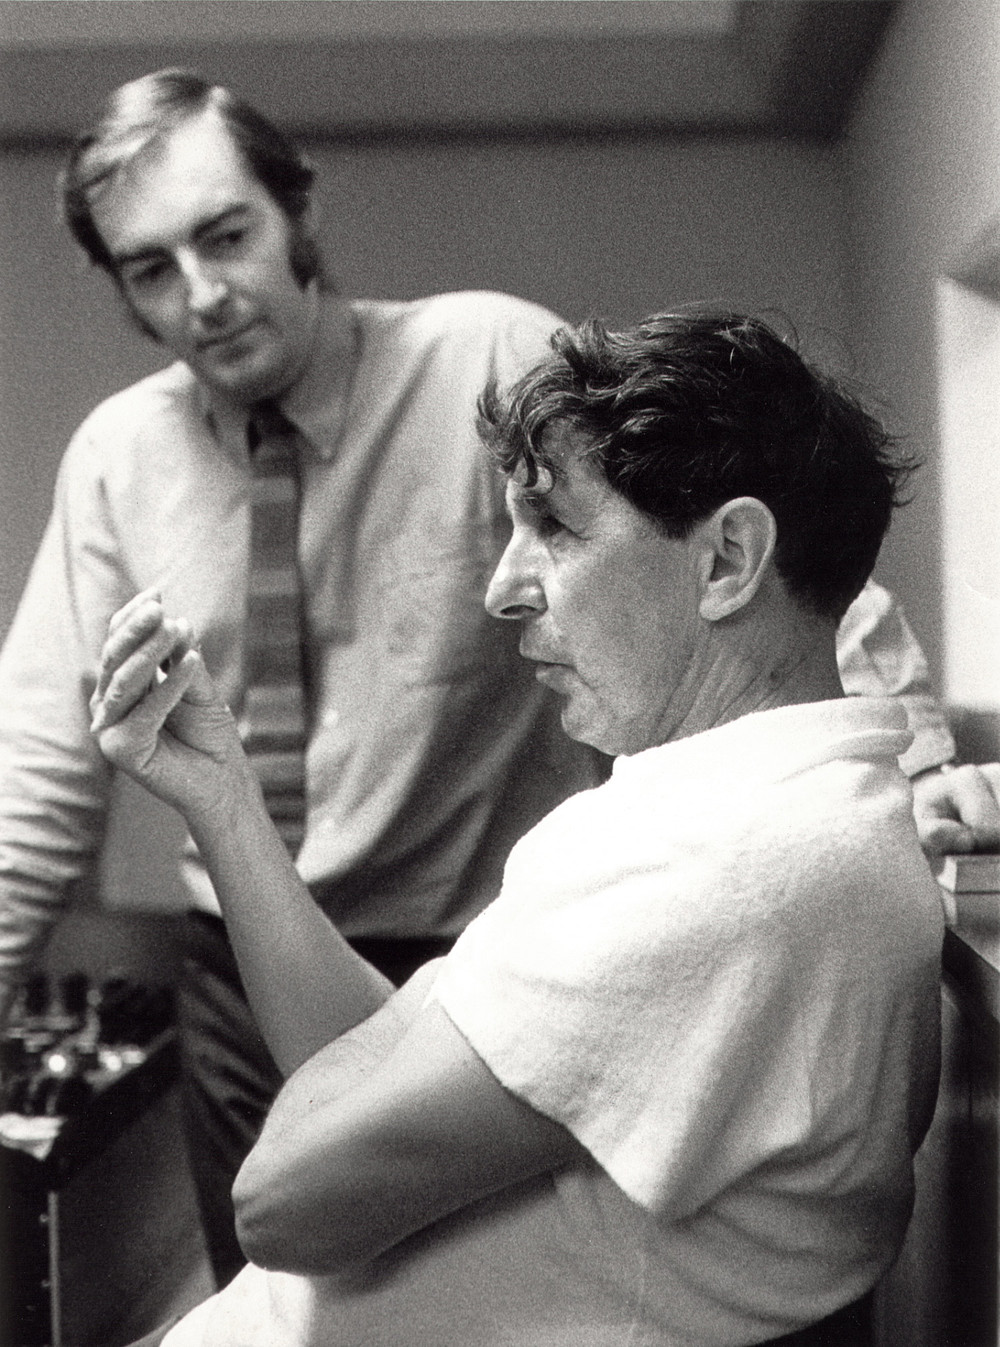 KEVIN WITH COMPOSER SIR MICHAEL TIPPETT IN 1970